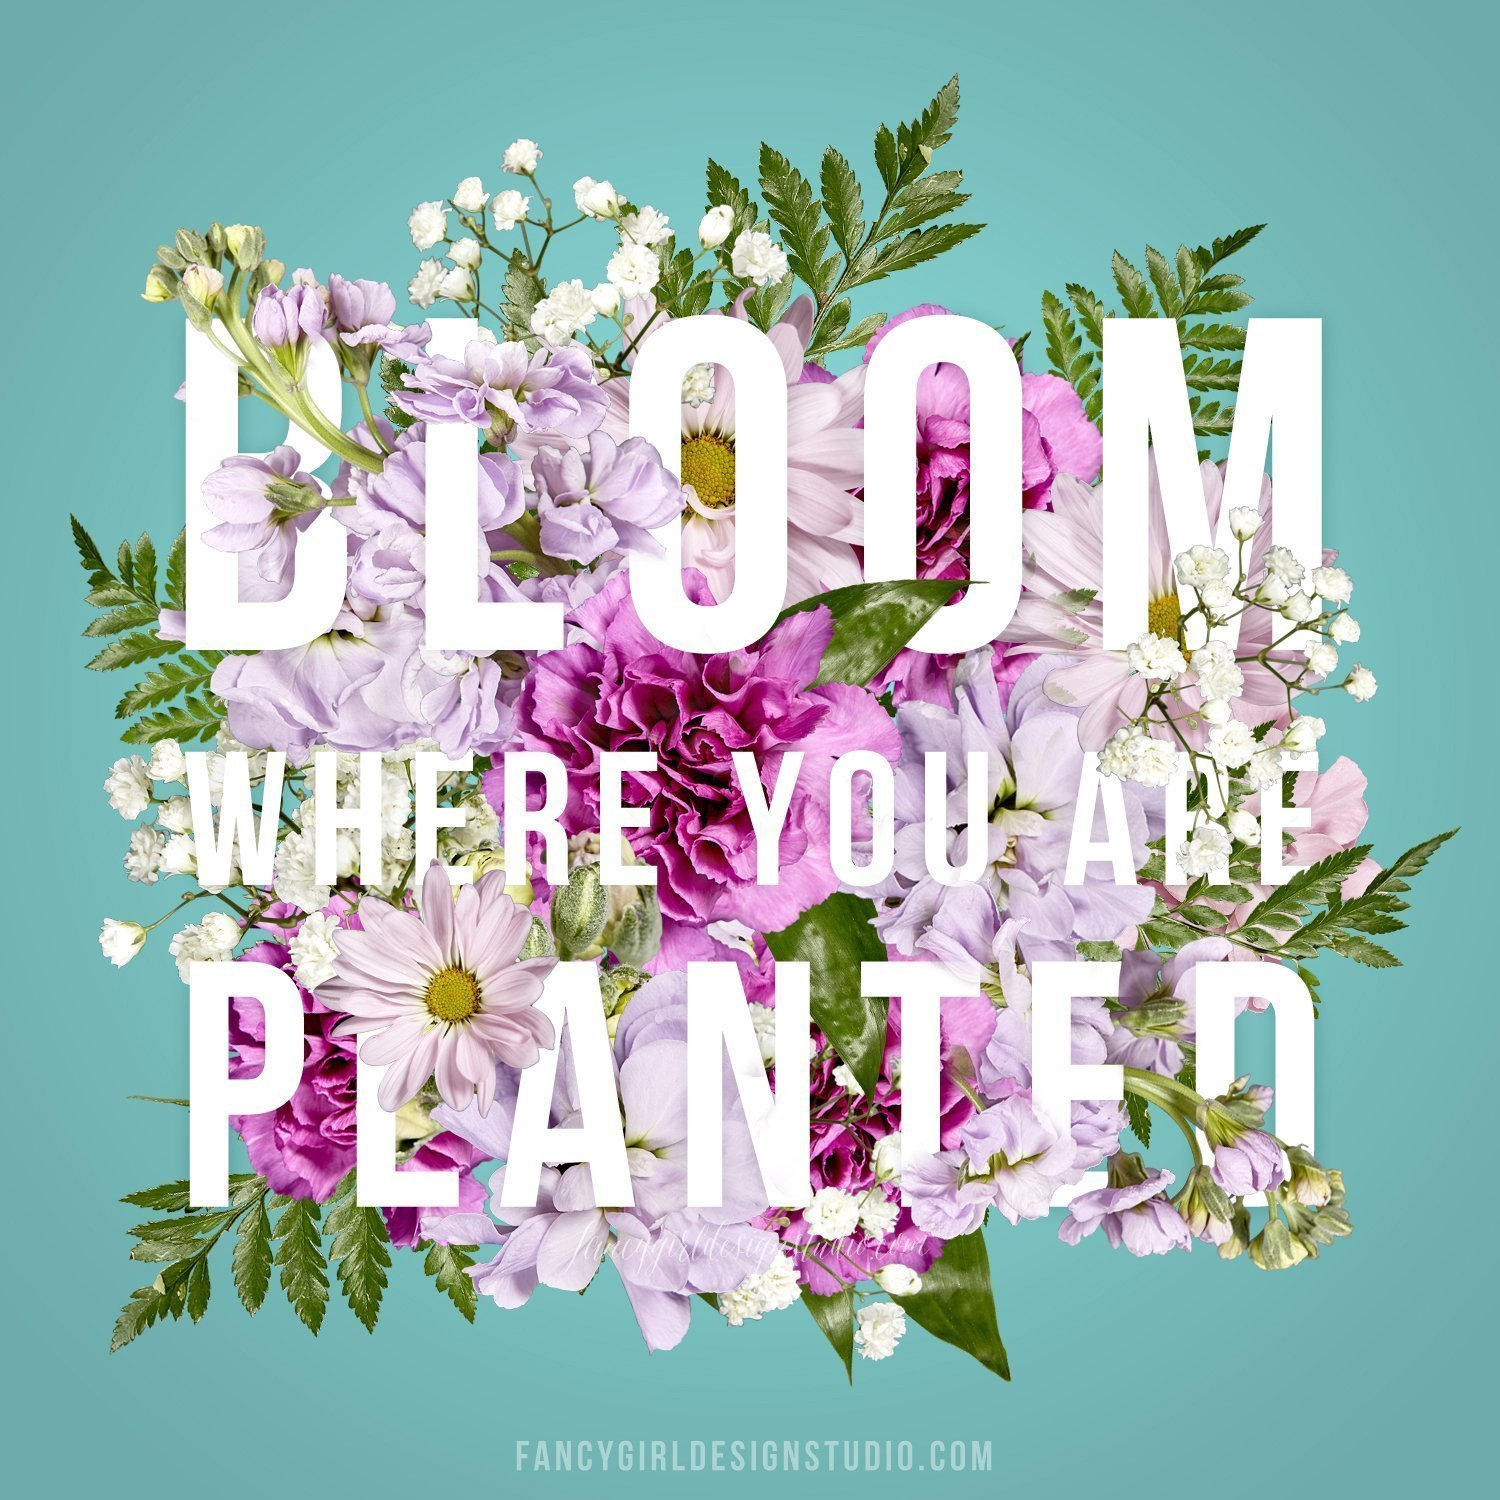 Bloom where you are planted by Fancy Girl Designs